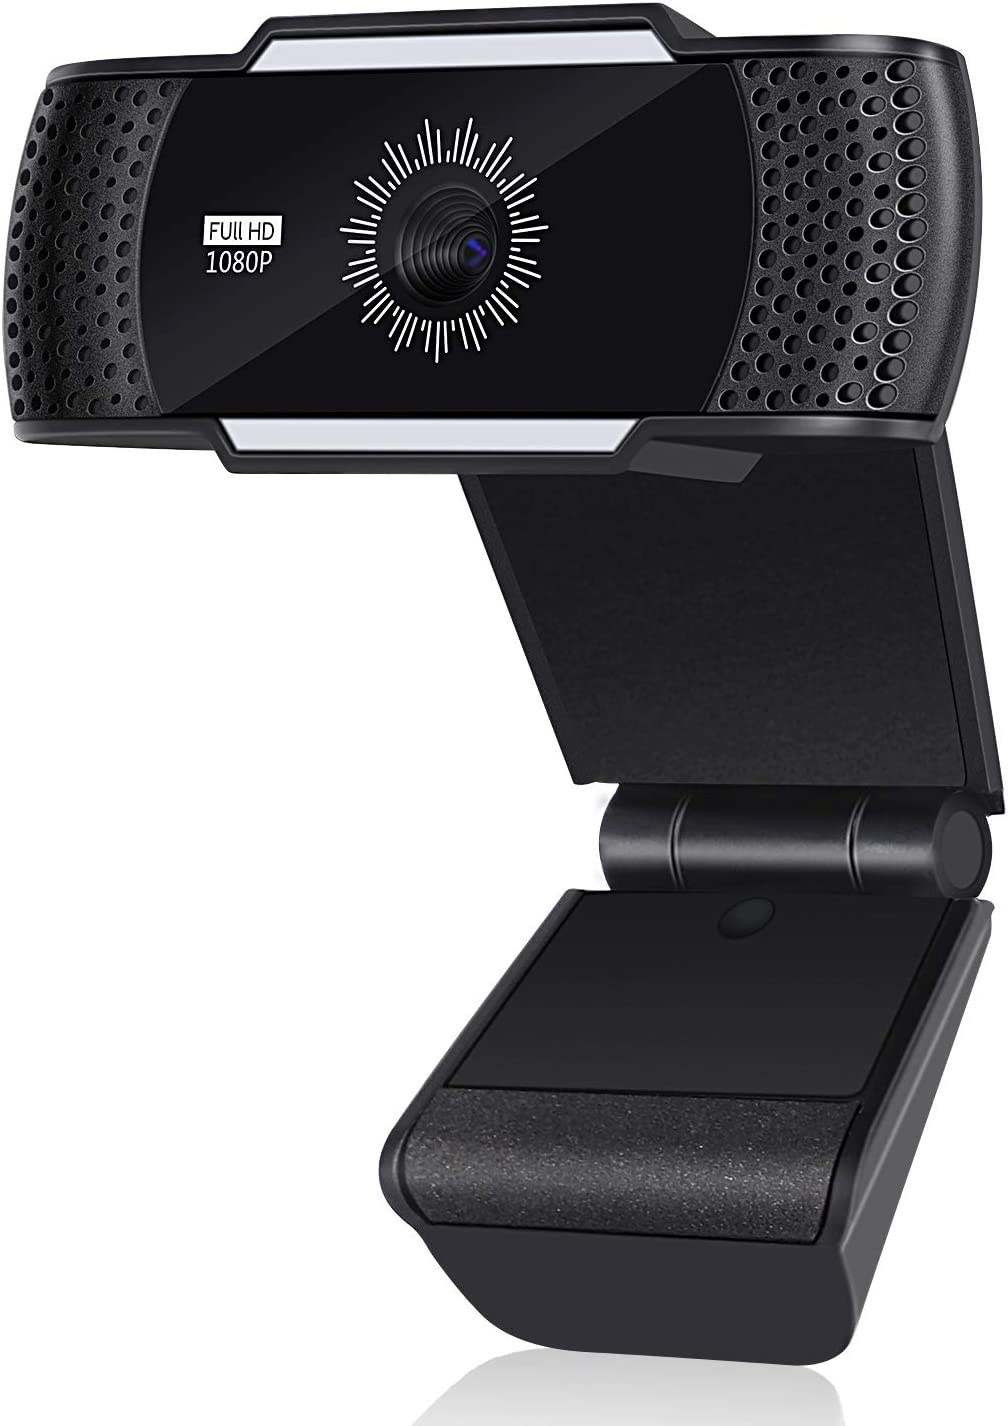 1080P Webcam, Full HD Web Camera with Built-in Dual Microphones, Wide-Screen Camera, and 70-Degree View for PC/Laptop/Desktop Live Streaming, Video Chatting, Recording, Conferencing, Online Teaching